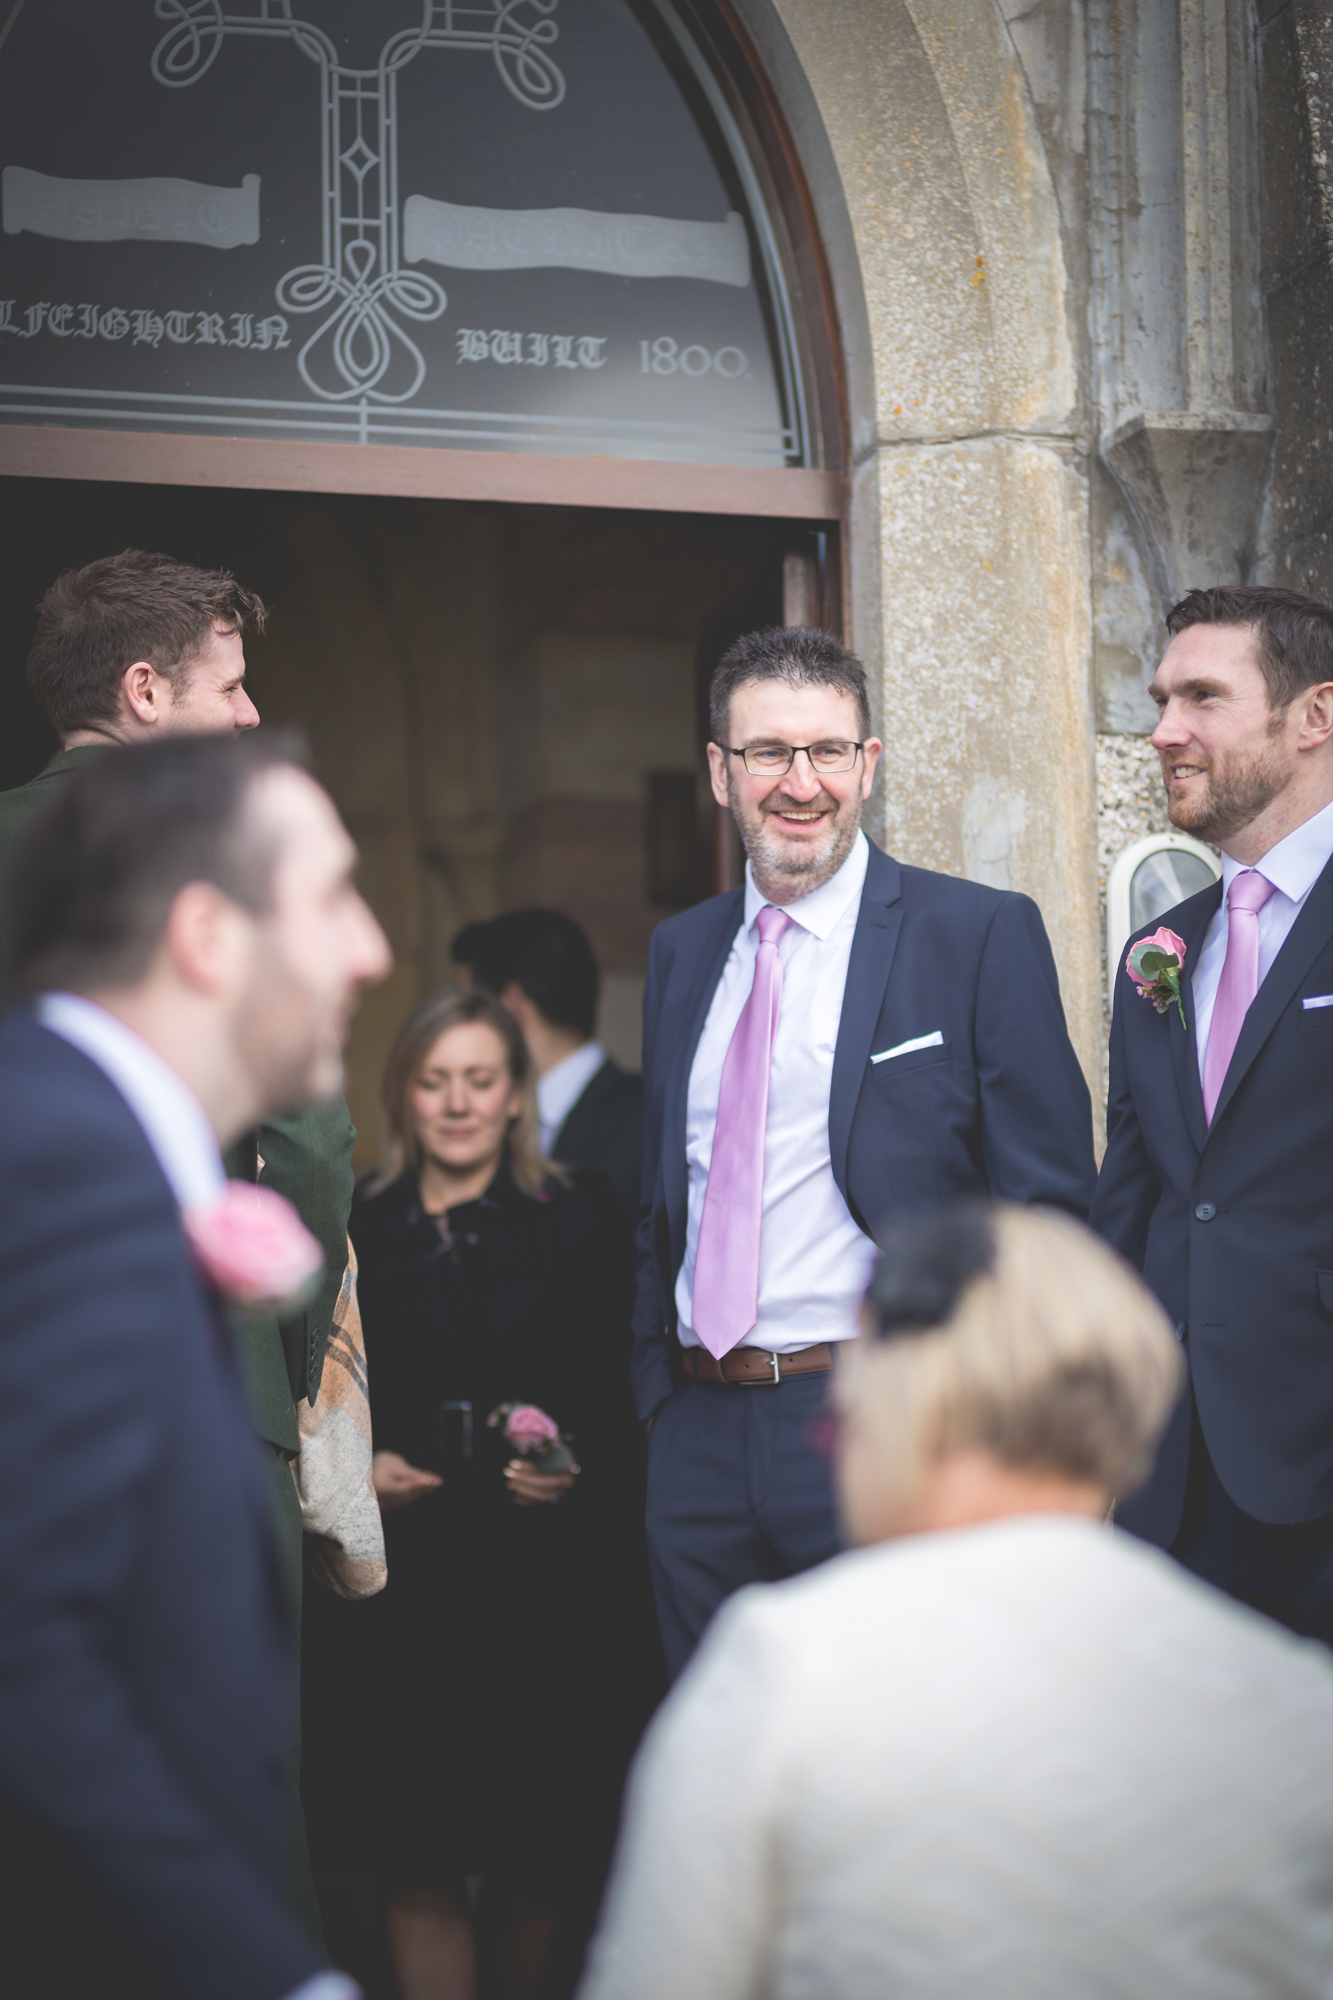 Francis&Oonagh-Ceremony-4.jpg